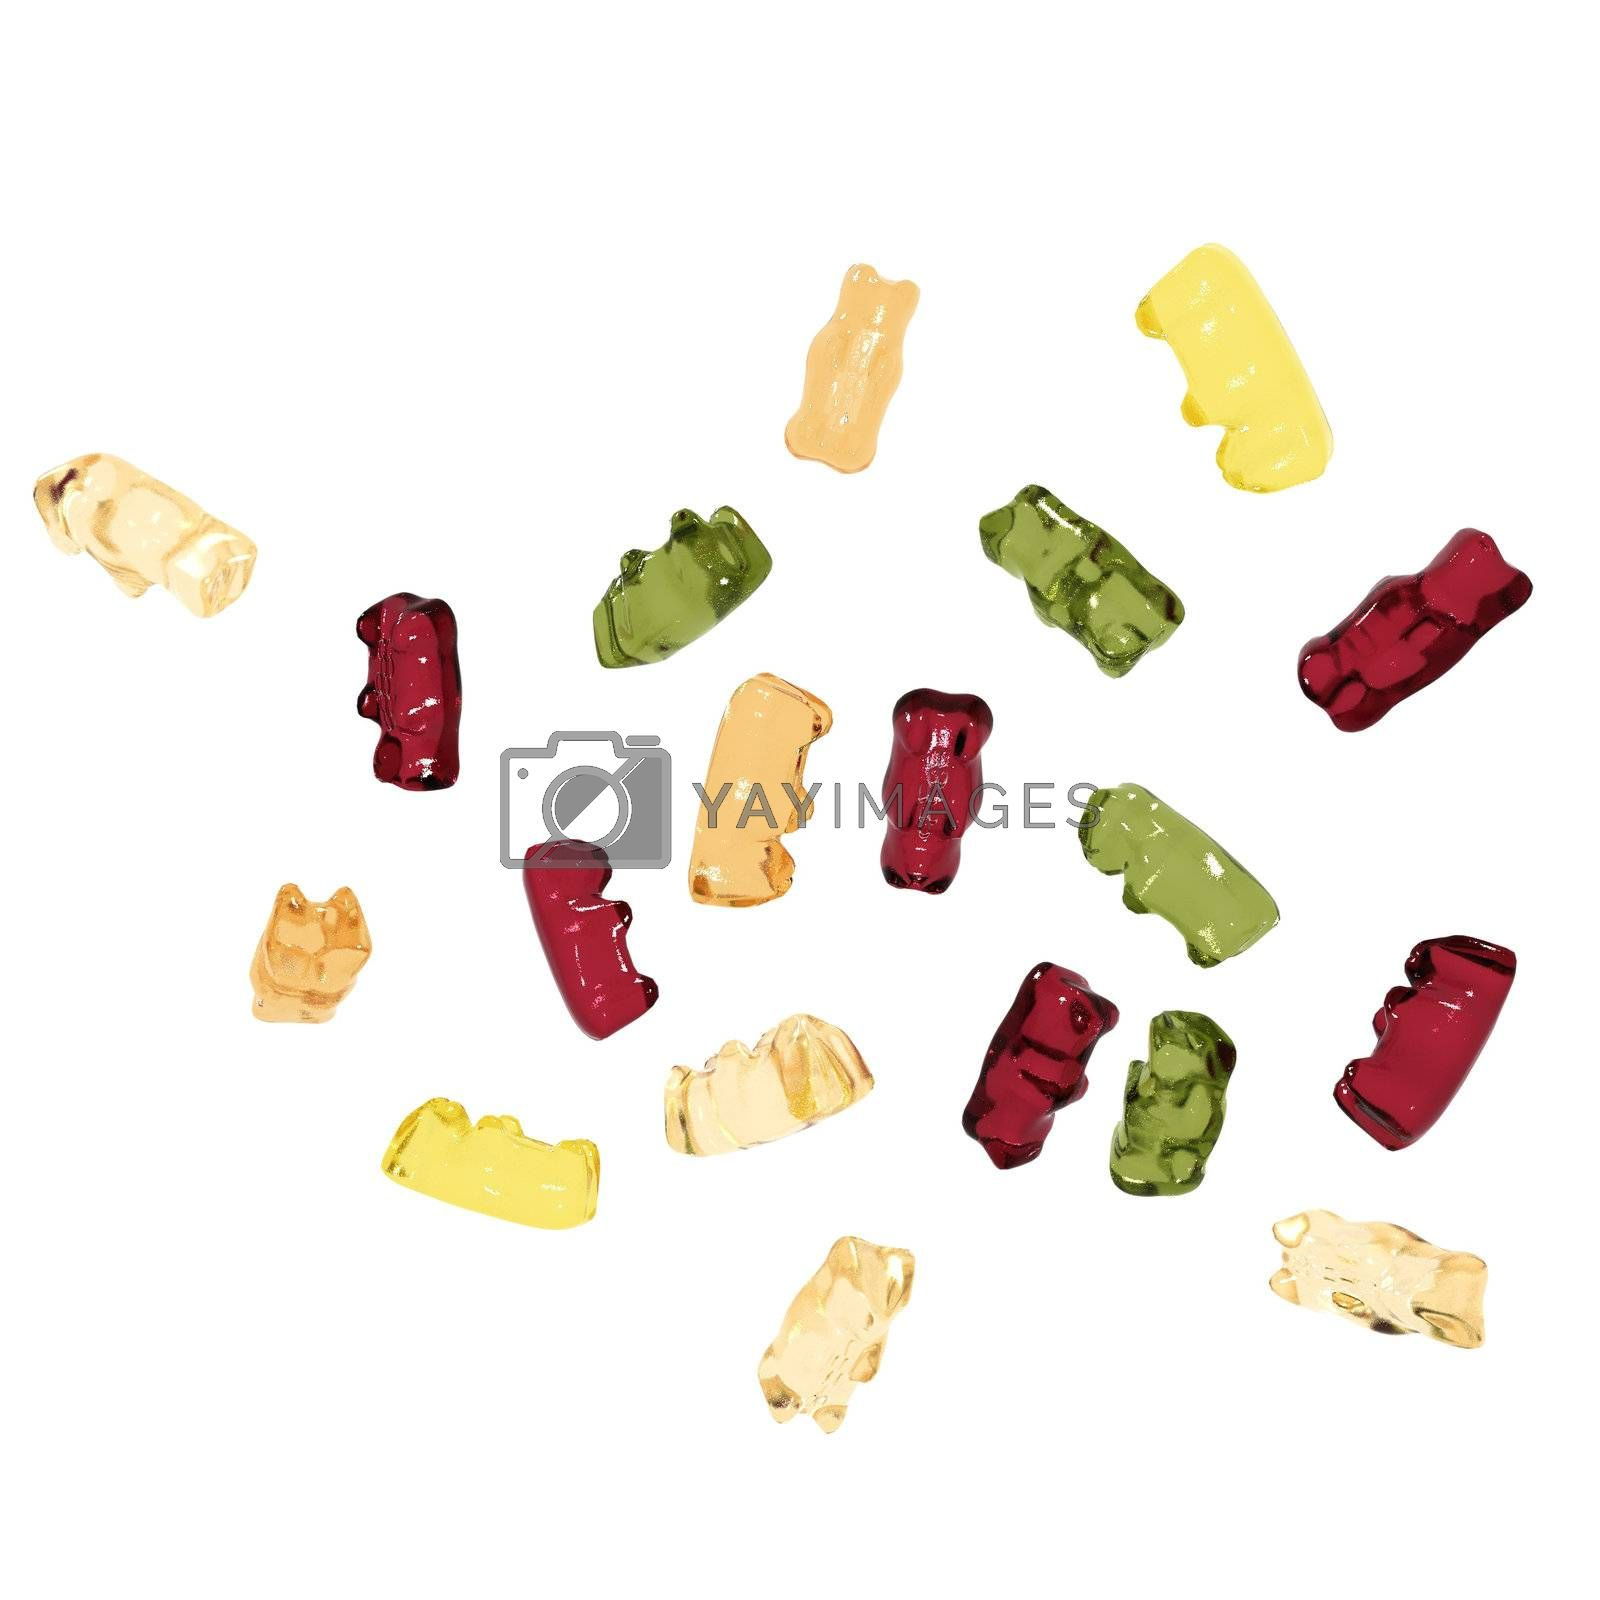 Isolated gummy bears on the white background